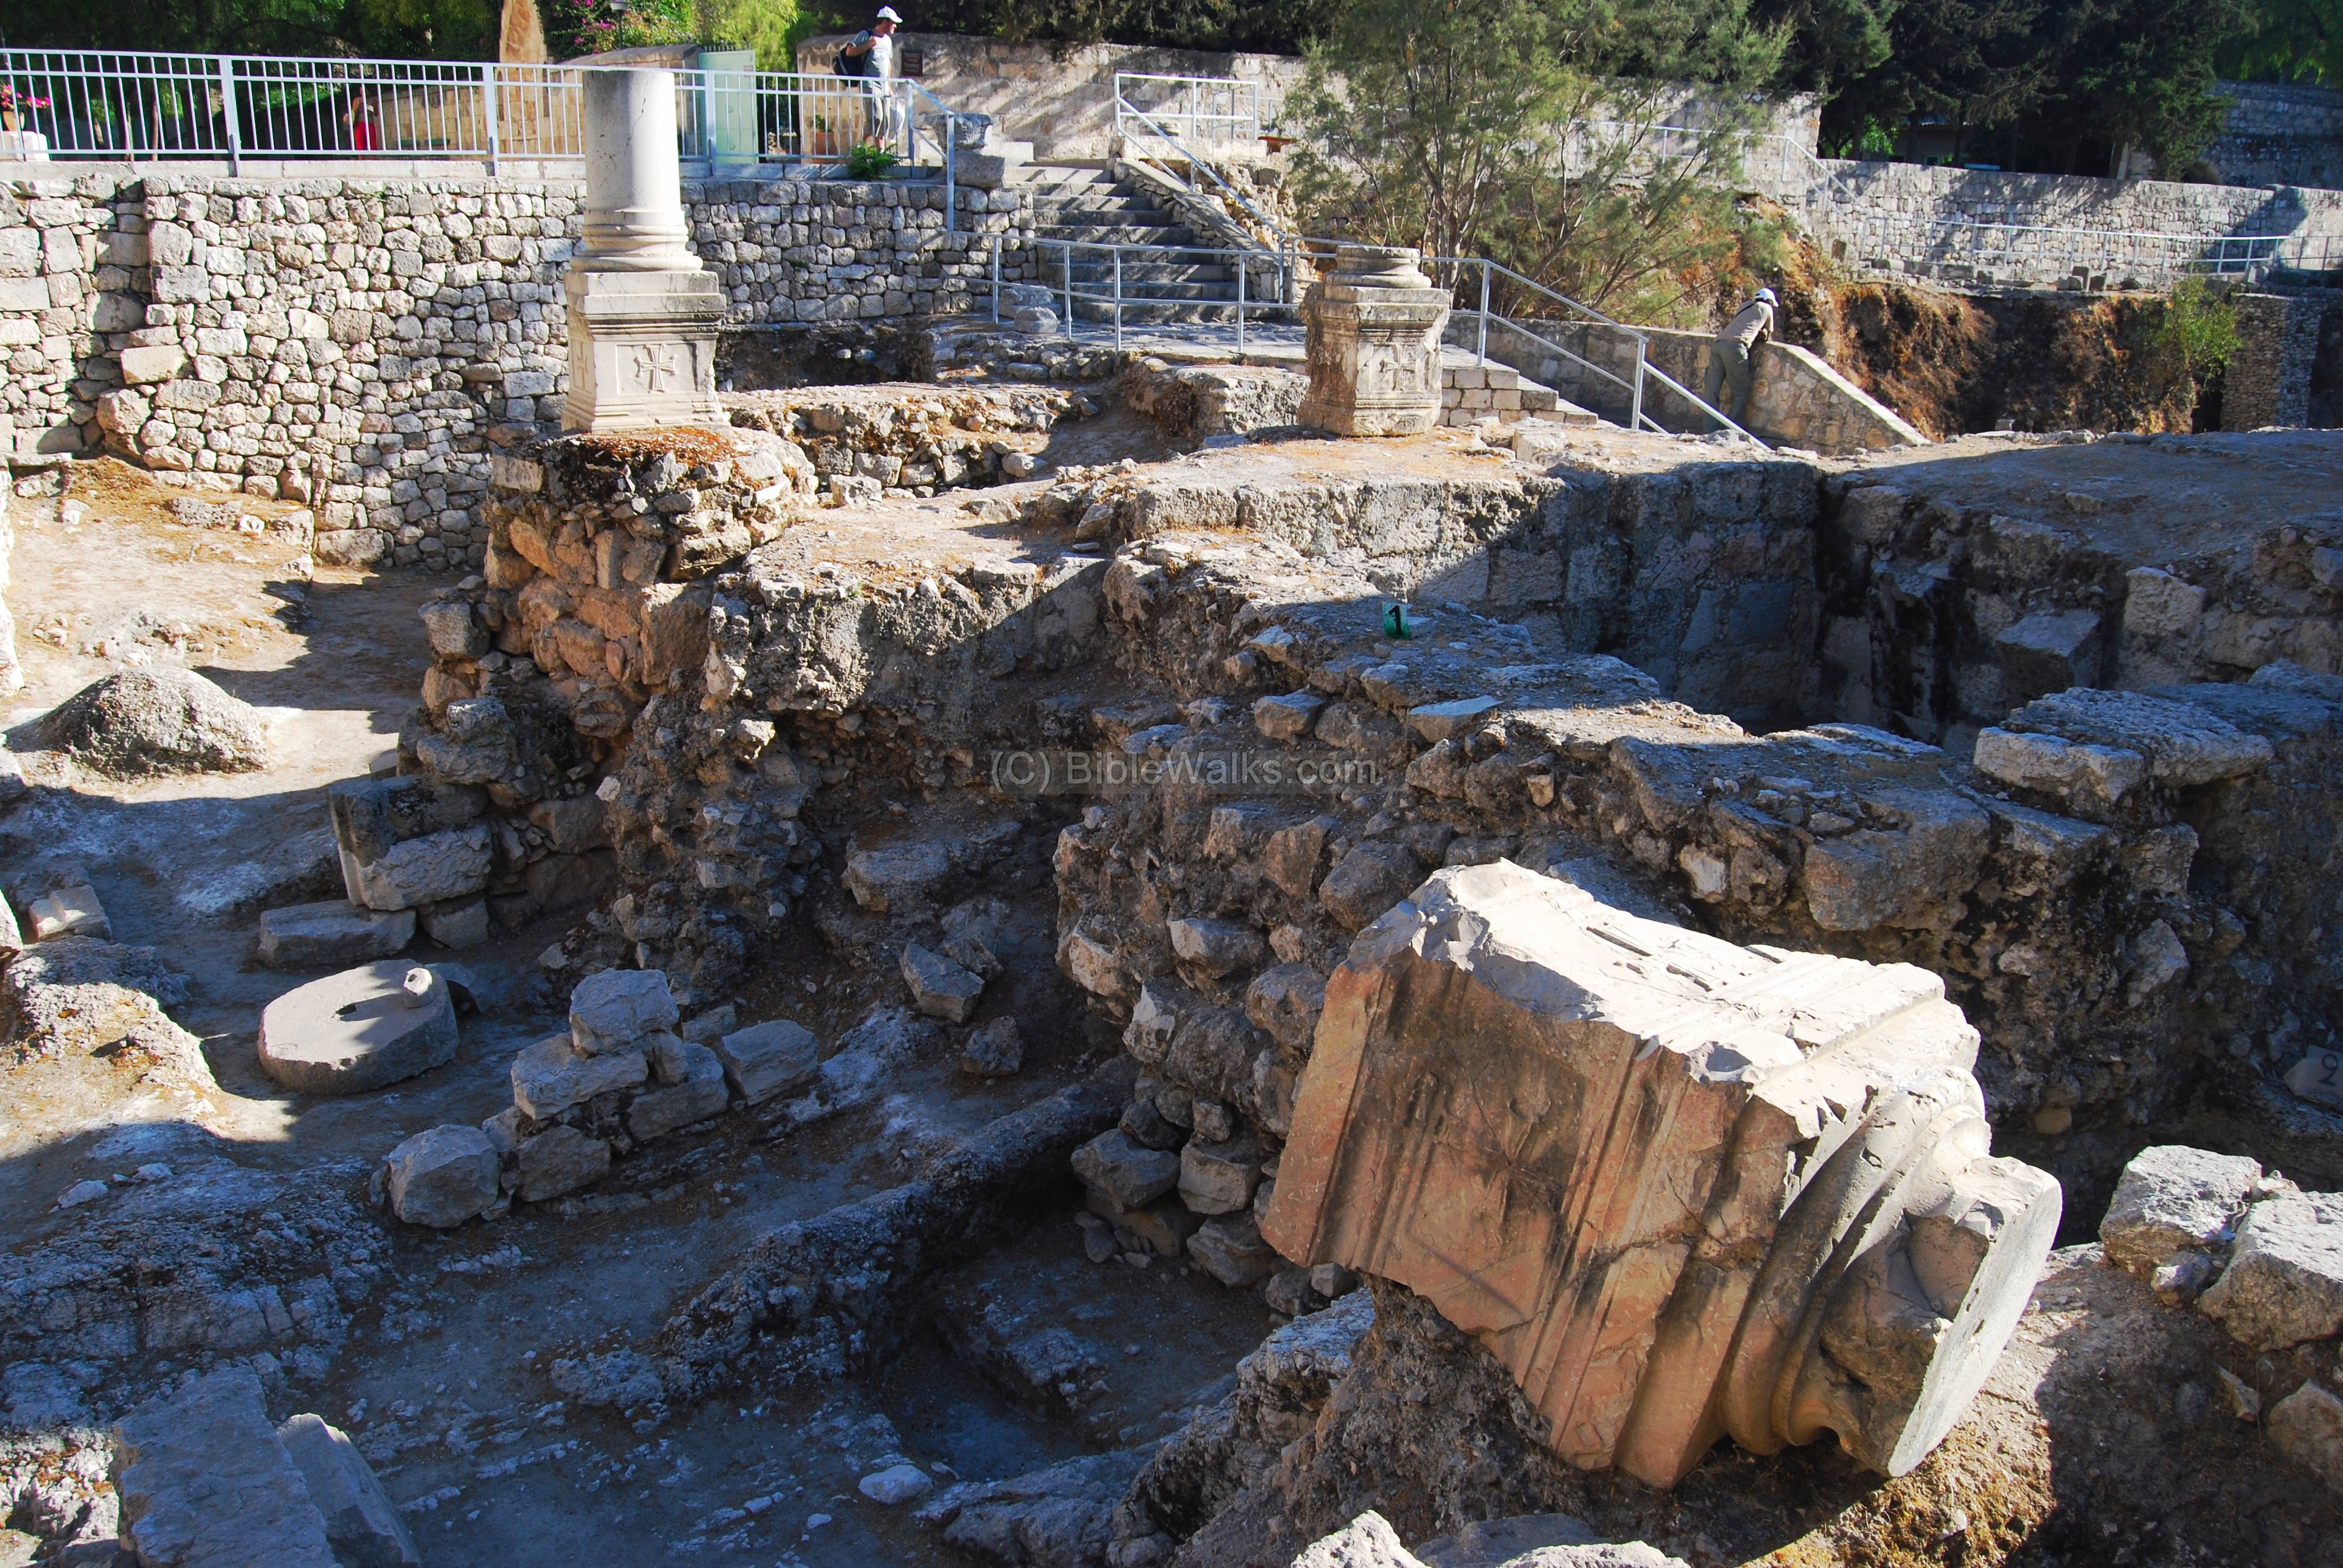 ... in operation during the times of Jesus, called the Bethesda pools